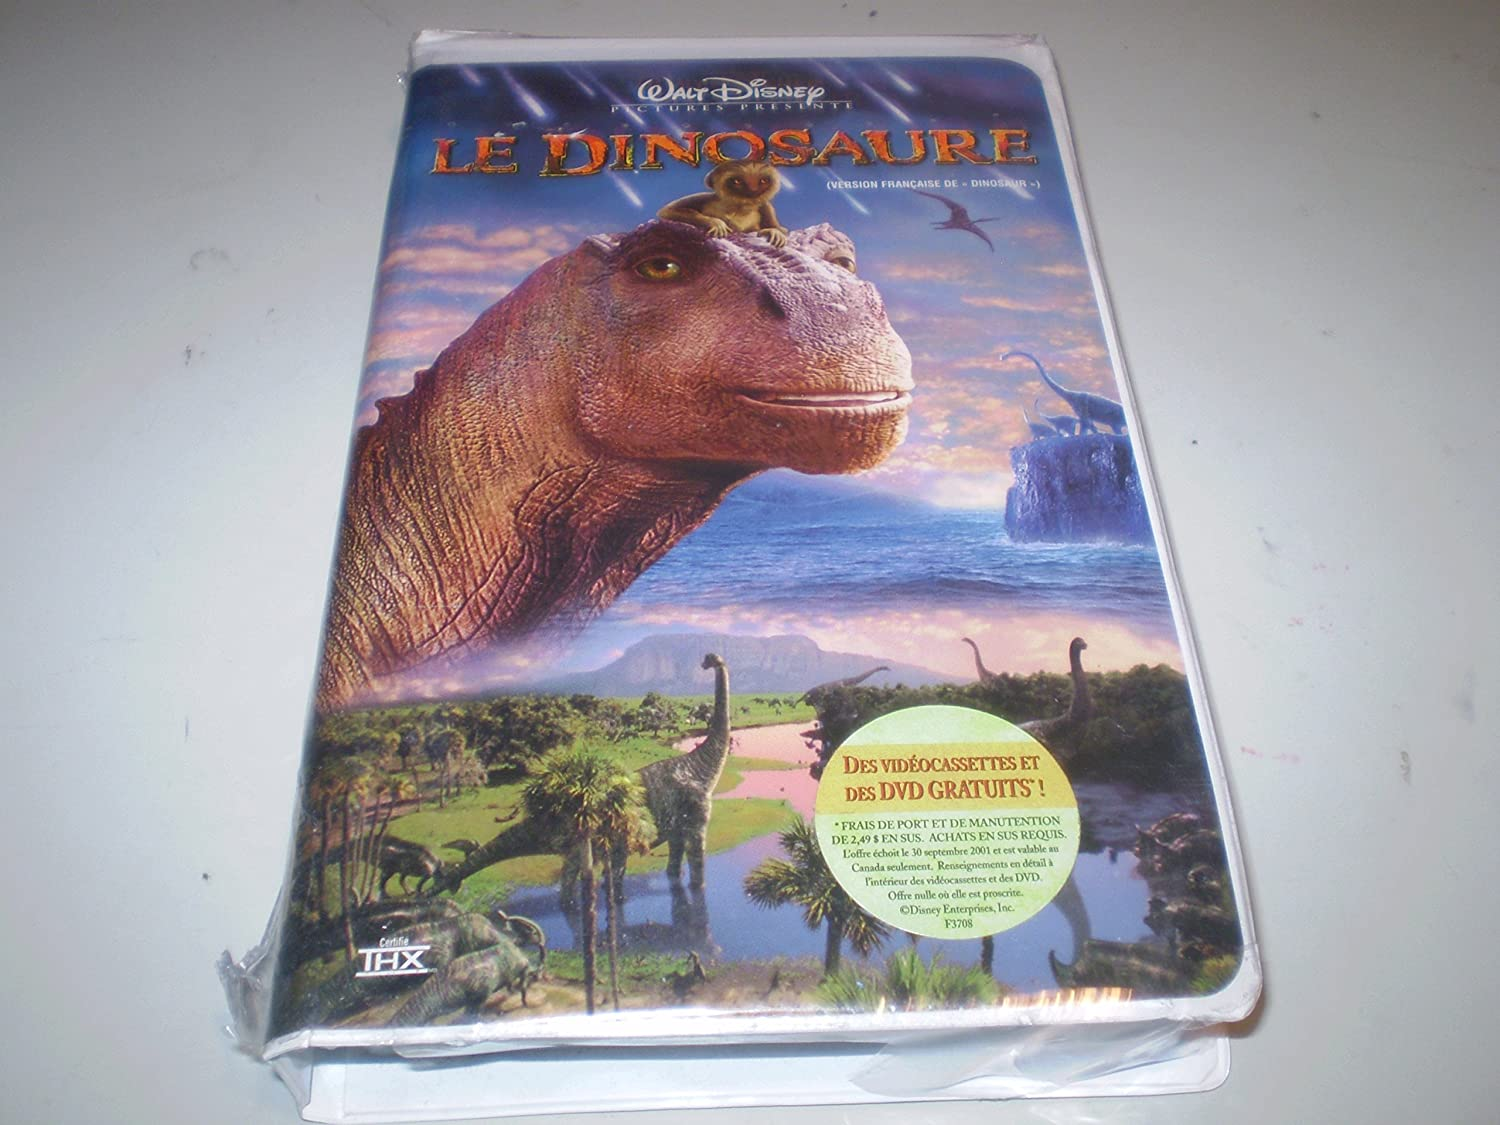 amazoncom le dinosaure walt disney pictures vhs french version movies tv - Dinosaure Disney